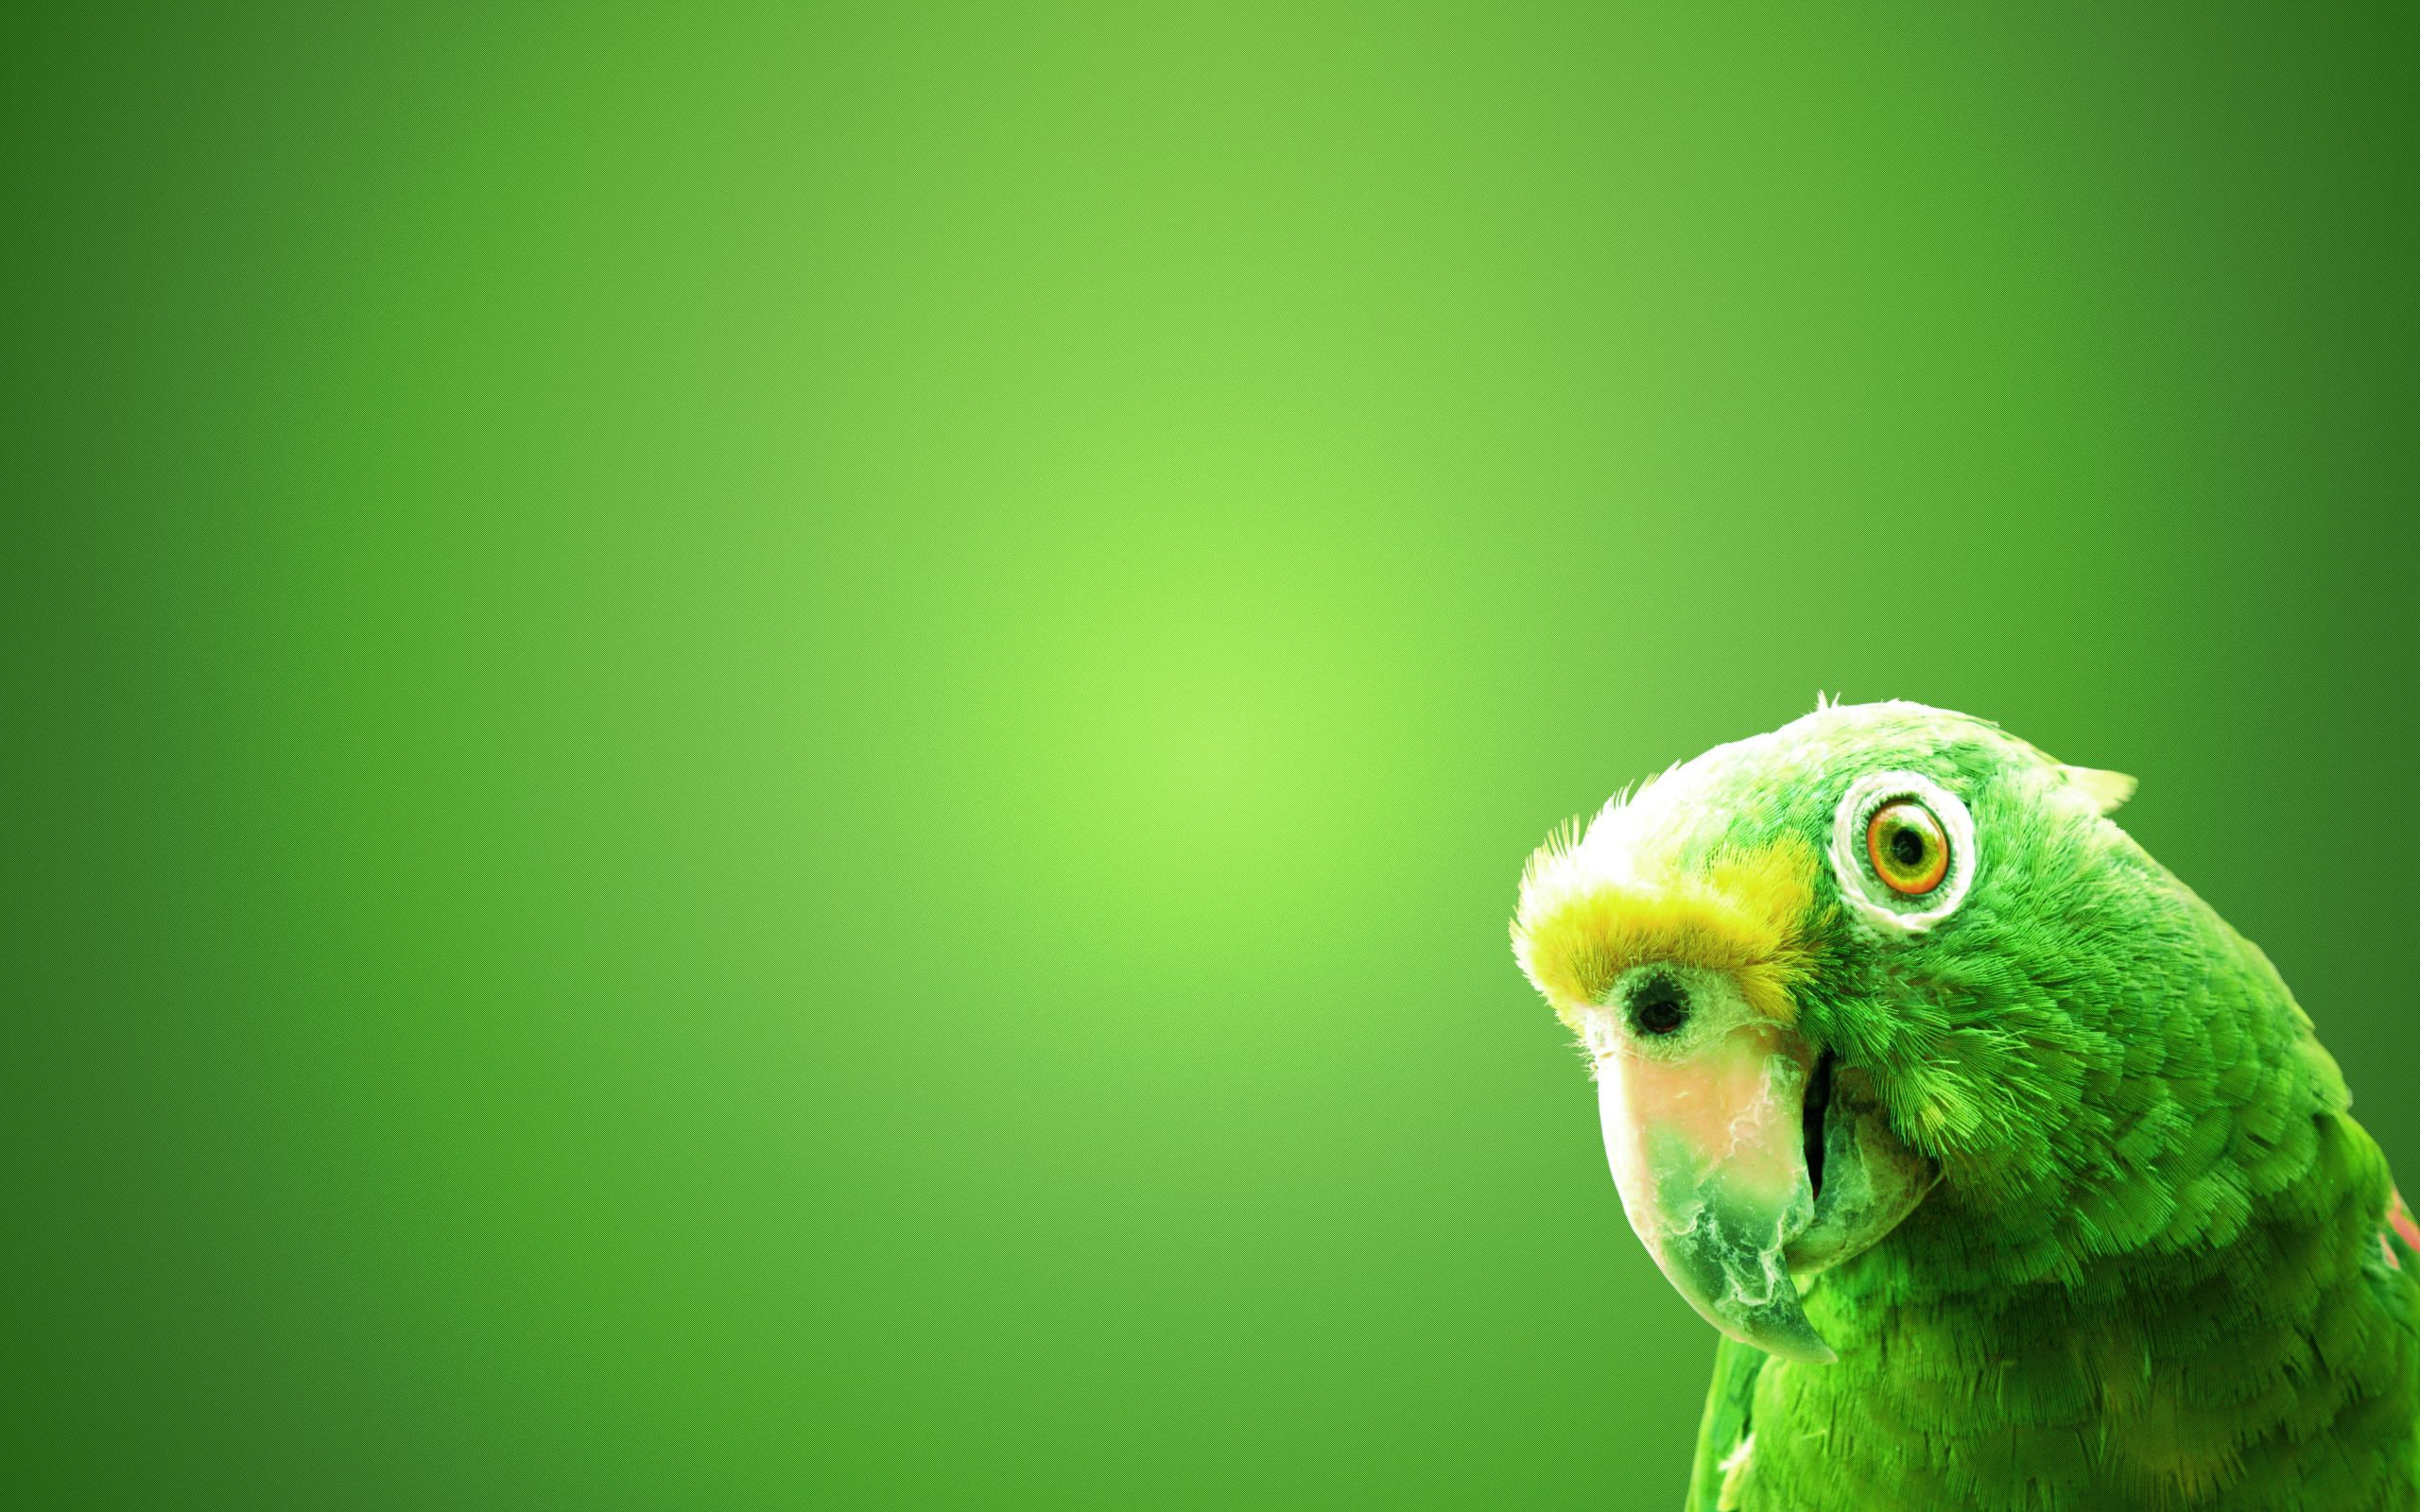 Hd wallpaper wide - Green Parrot Wide Wallpaper Hd Wallpaper